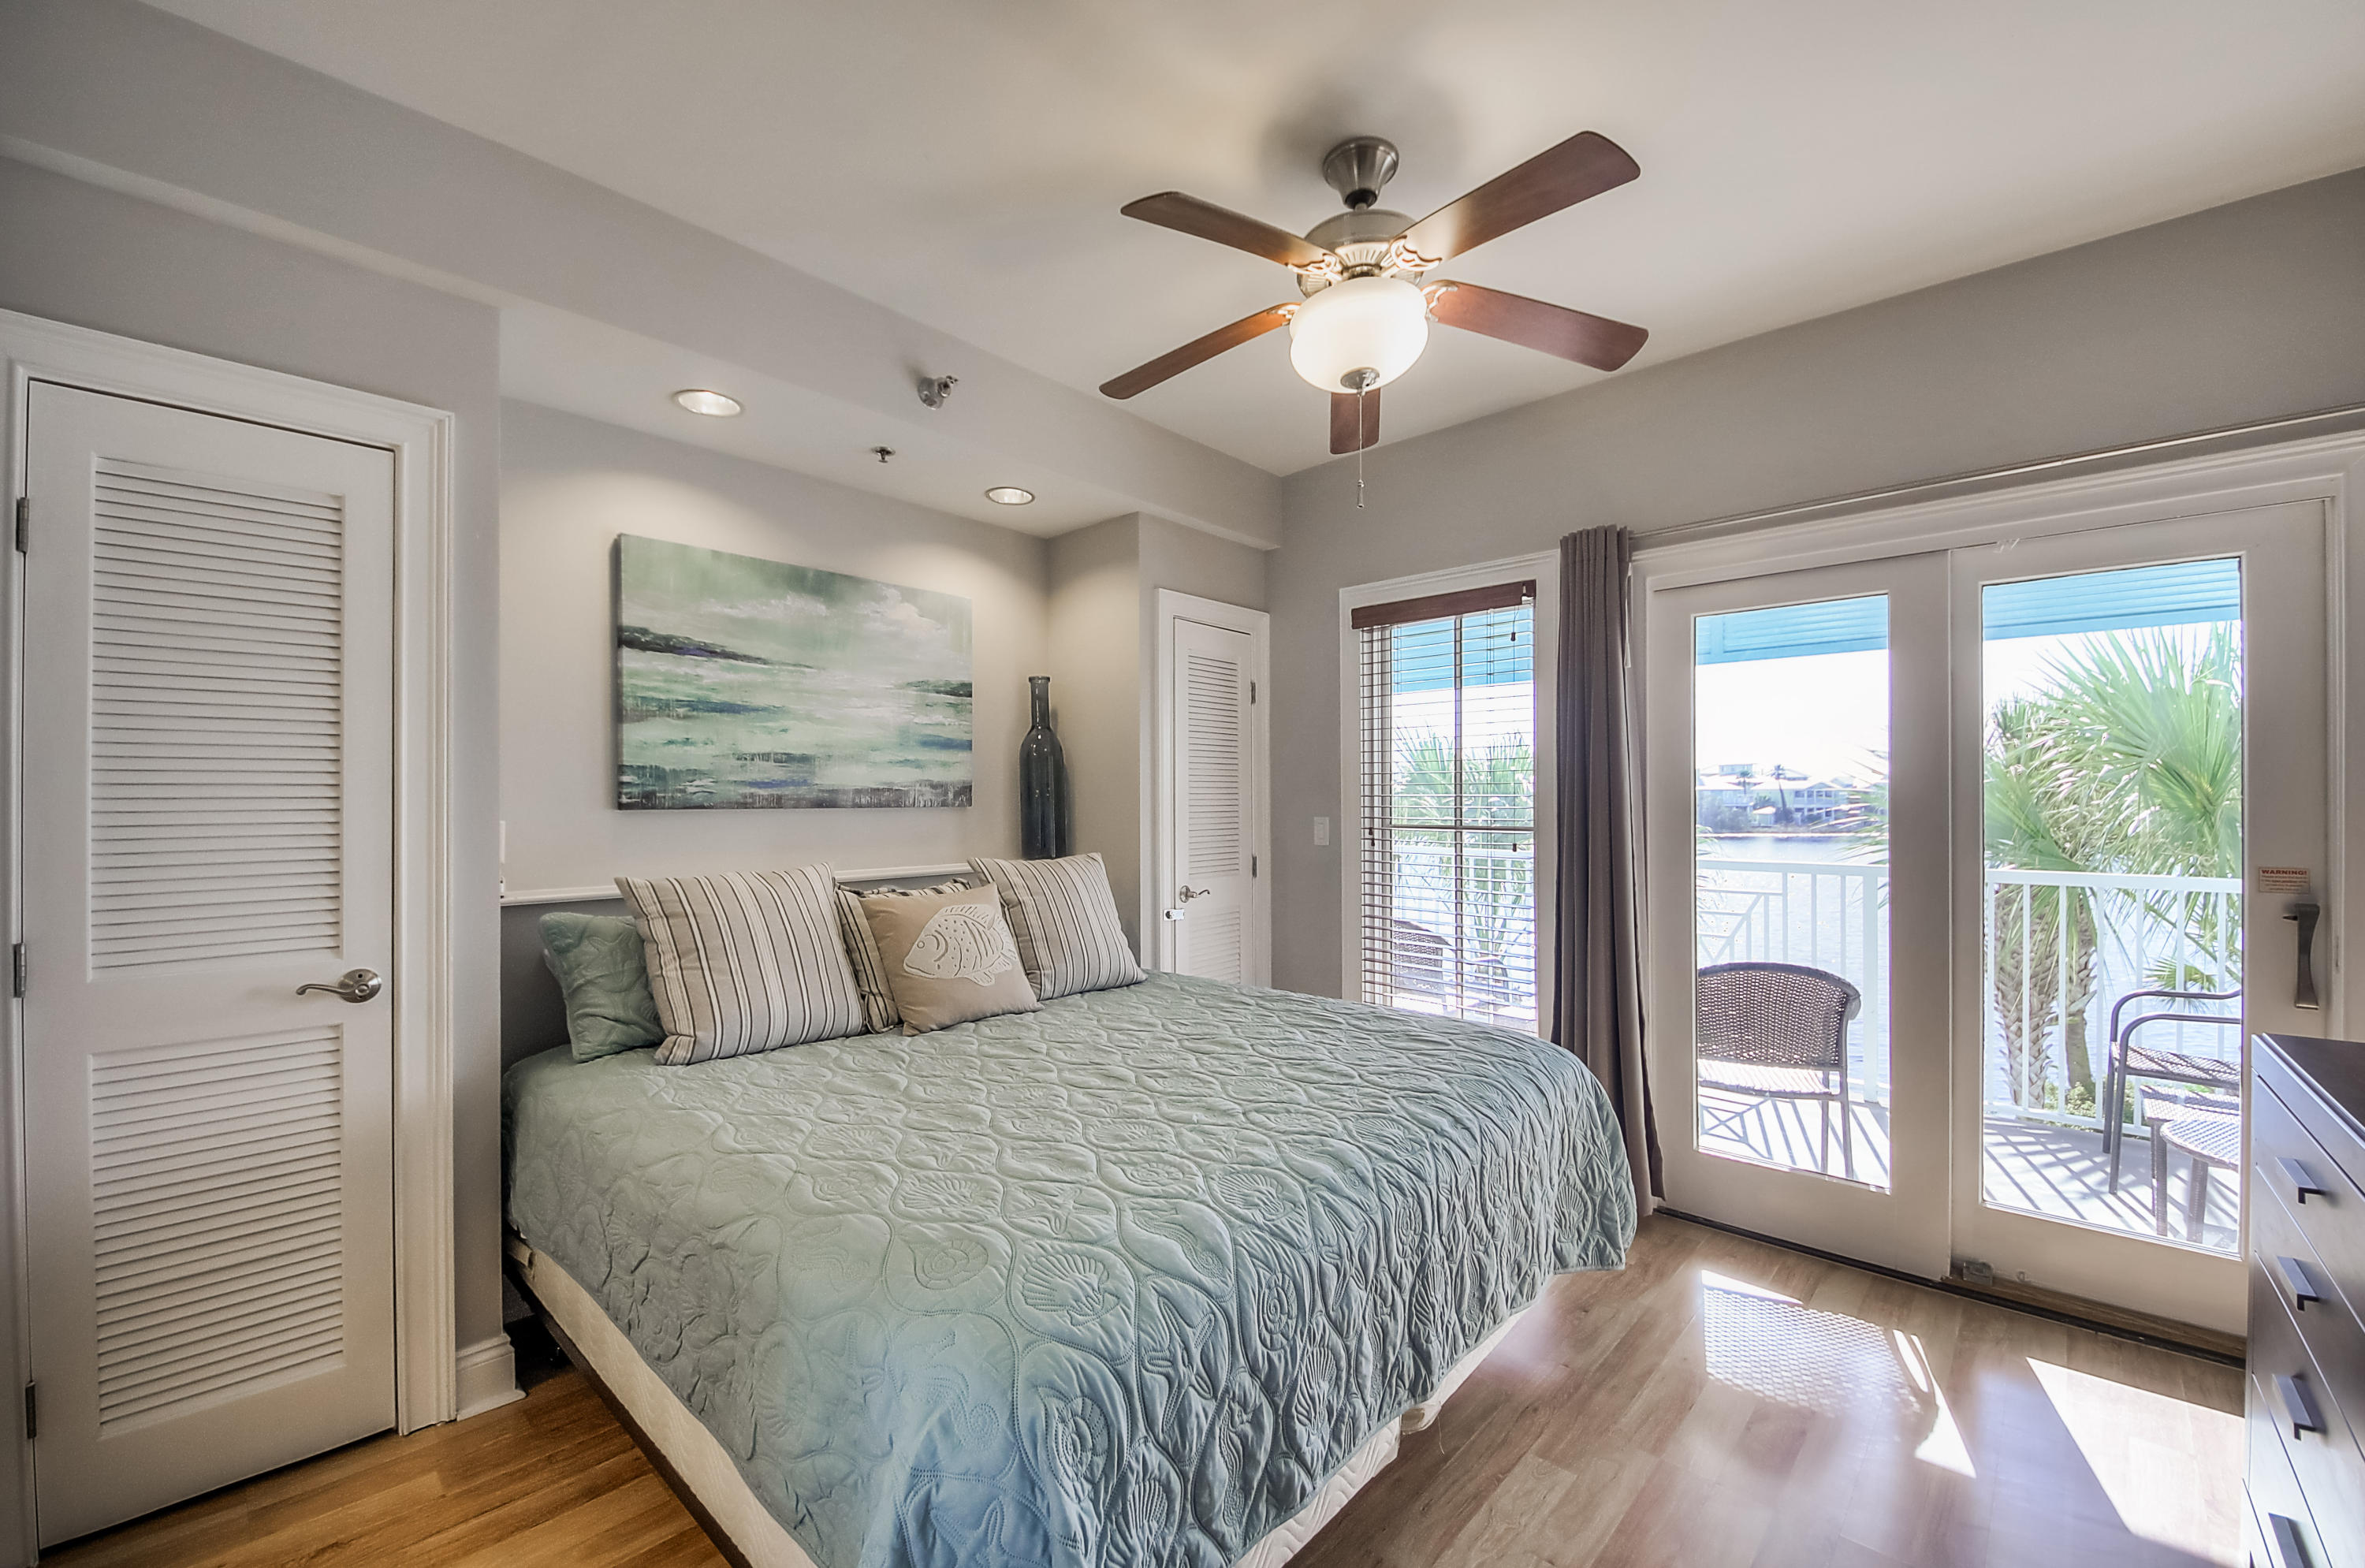 **4TH FLOOR - CORNER CONDO - BUYER INCENTIVES AVAILABLE** Carillon Beach Inn is ideally located near Rosemary, Alys Beach and all Highway 30-A has to offer while also being in close proximity to Lake Powell, Pier Park Shopping Development, (ECP) PCB International Airport, Frank Brown Park and so much more! Take advantage of all of the amenities this fantastic resort has to offer along with it's pristine deeded ''Dune Walkovers'' with multiple access points across almost 4000ft of deeded beach front.This 4th floor property offers views over the lake to the Gulf of Mexico from the bedroom area and large balcony. The condo sets up as a one bedroom suite with an abbreviated kitchen. These condos are producing nearly $25k in gross rental income. True gems in today's market!